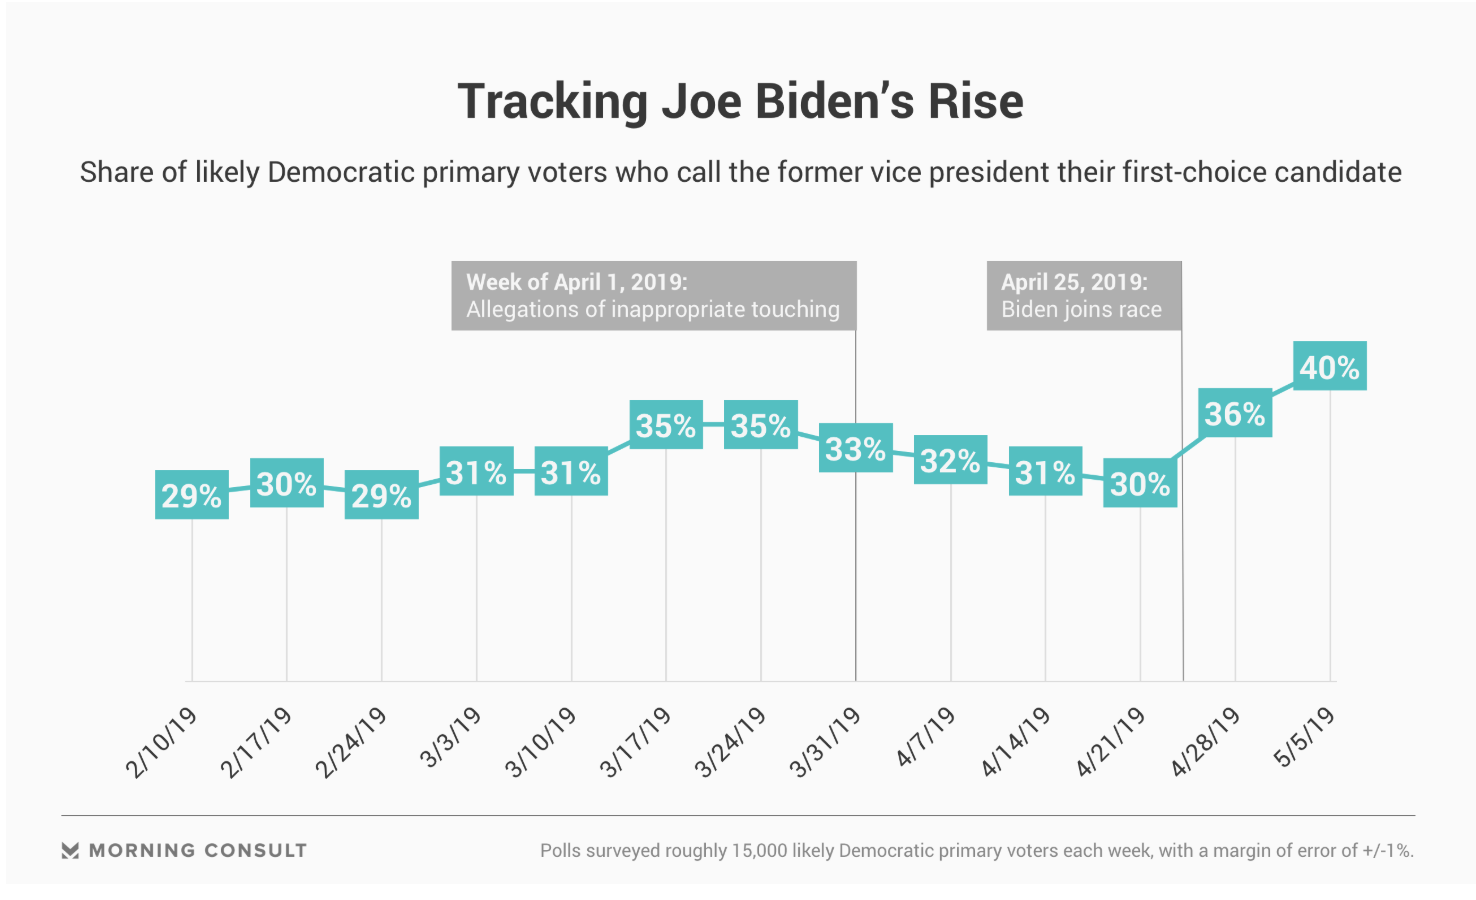 https://morningconsult.com/2019/05/06/biden-continues-post-launch-surge-grows-lead-among-likely-democratic-voters/